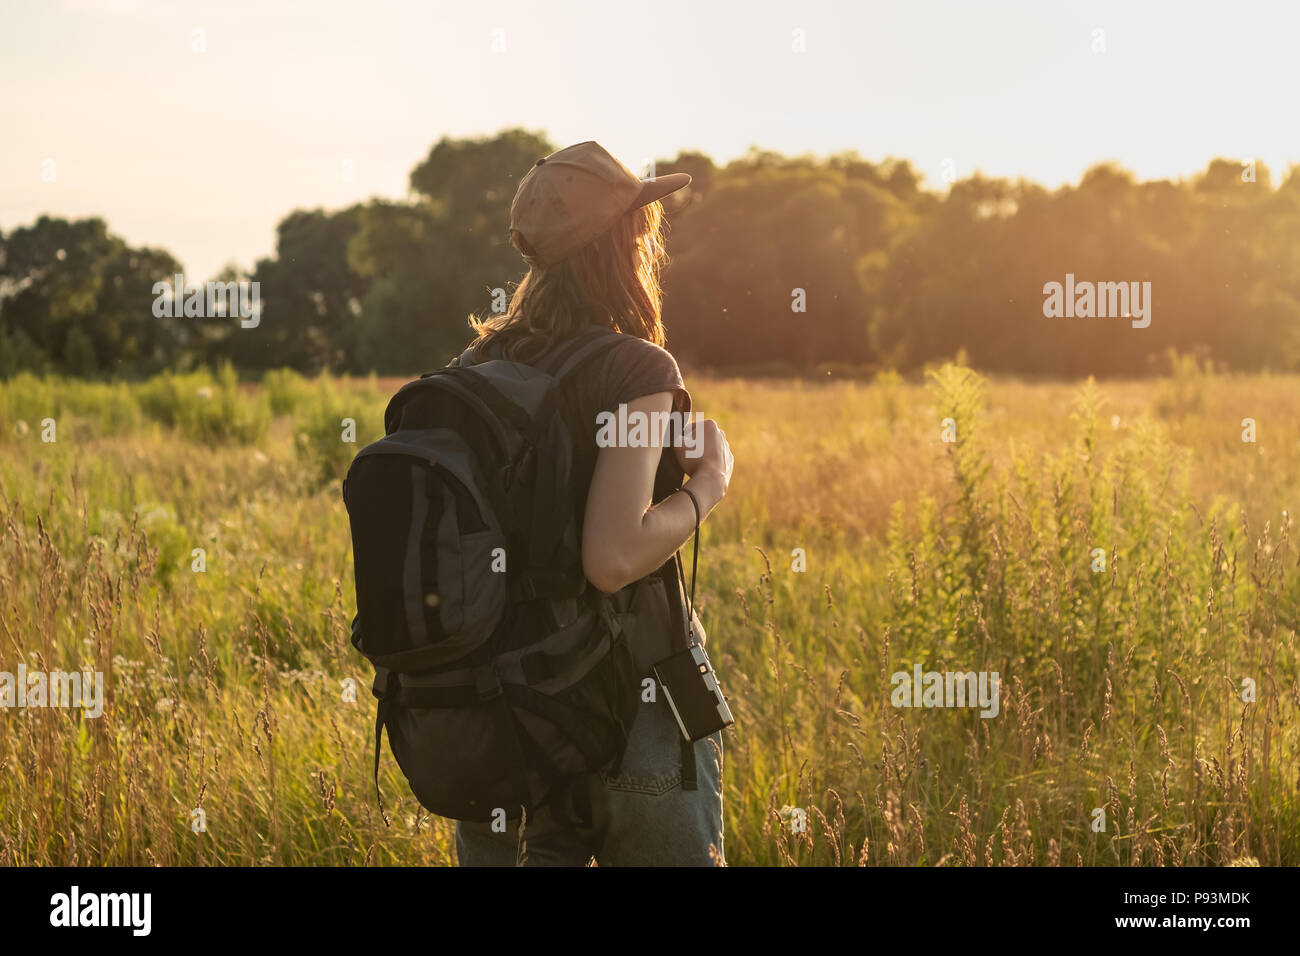 Young woman with tourist backpack in field. Female person looking at sunset in high grass of beautiful rural area in summer - Stock Image